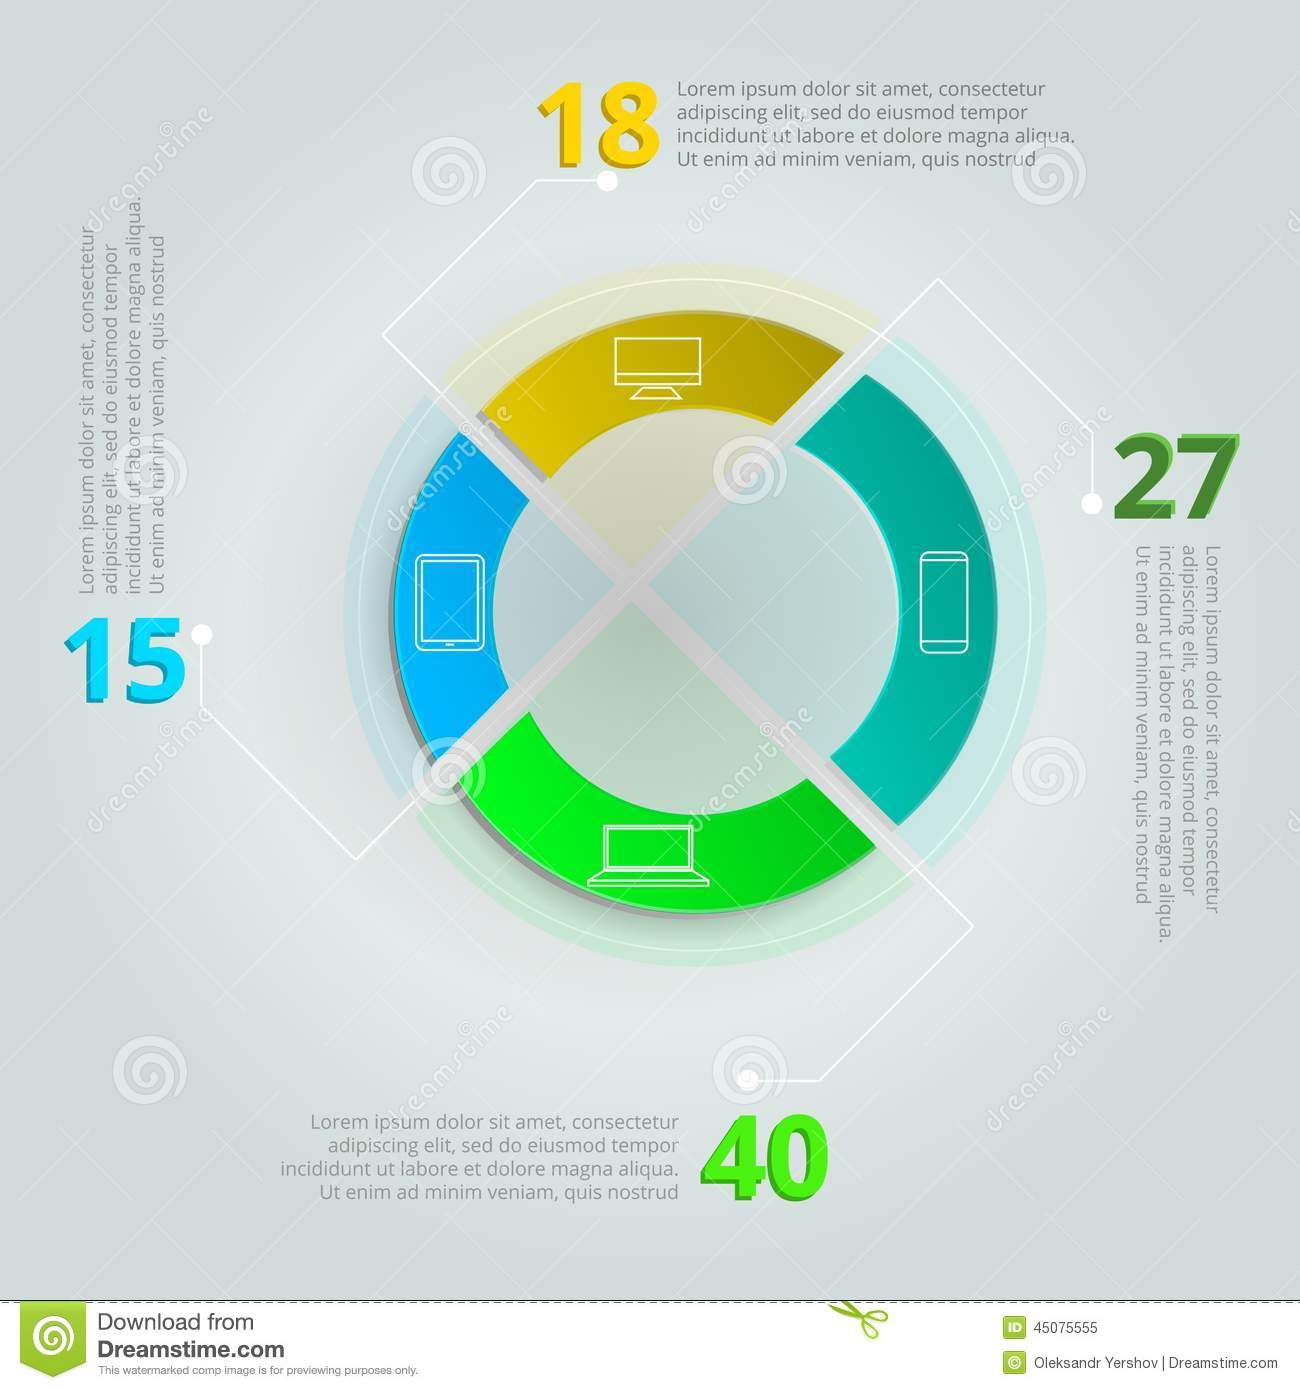 Round Infographic With Colored Parts Icons For IT Sphere Sample Data On Gray Background